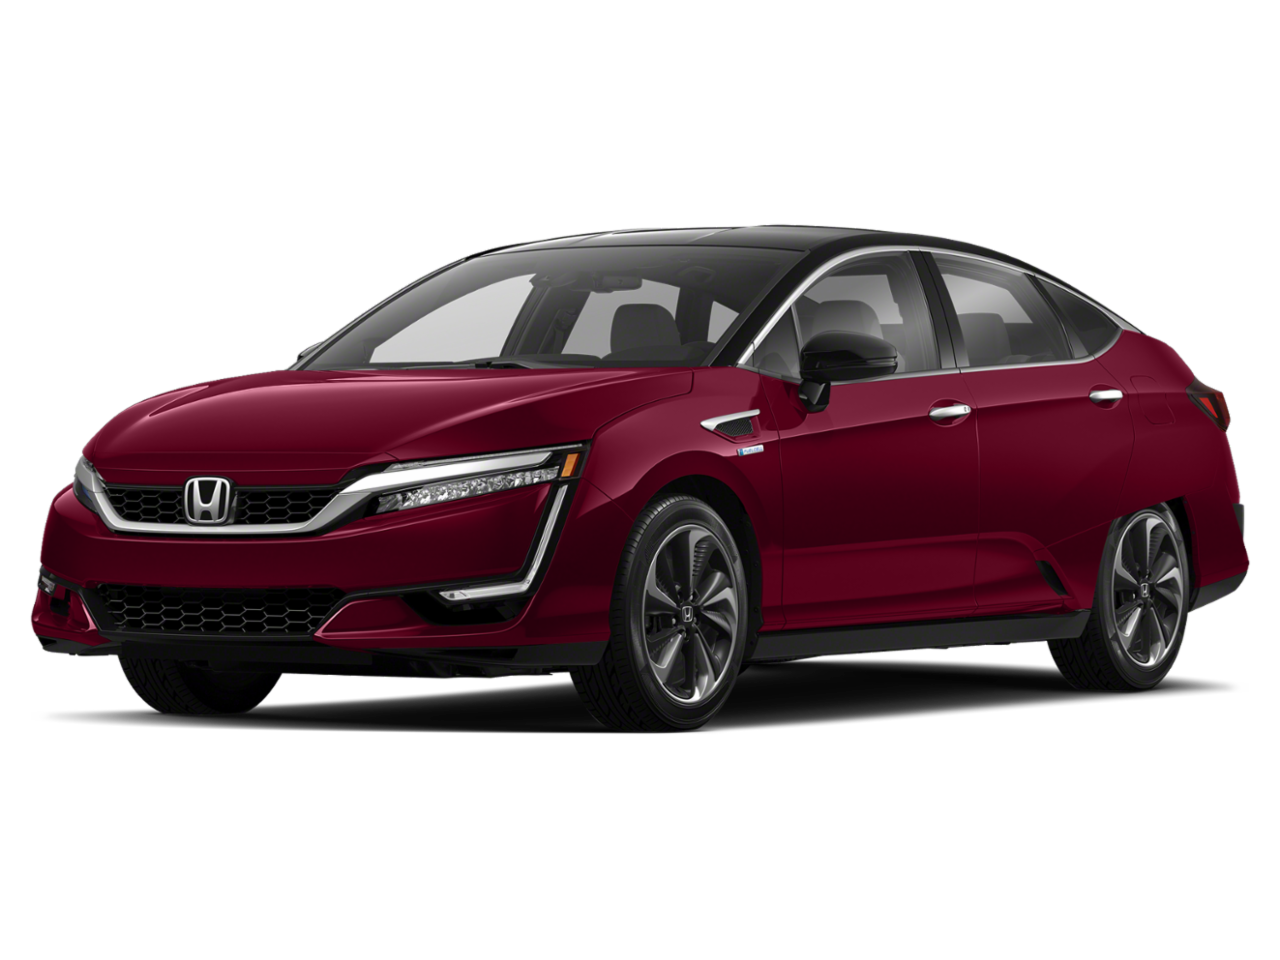 Honda 2021 Clarity Fuel Cell Sedan